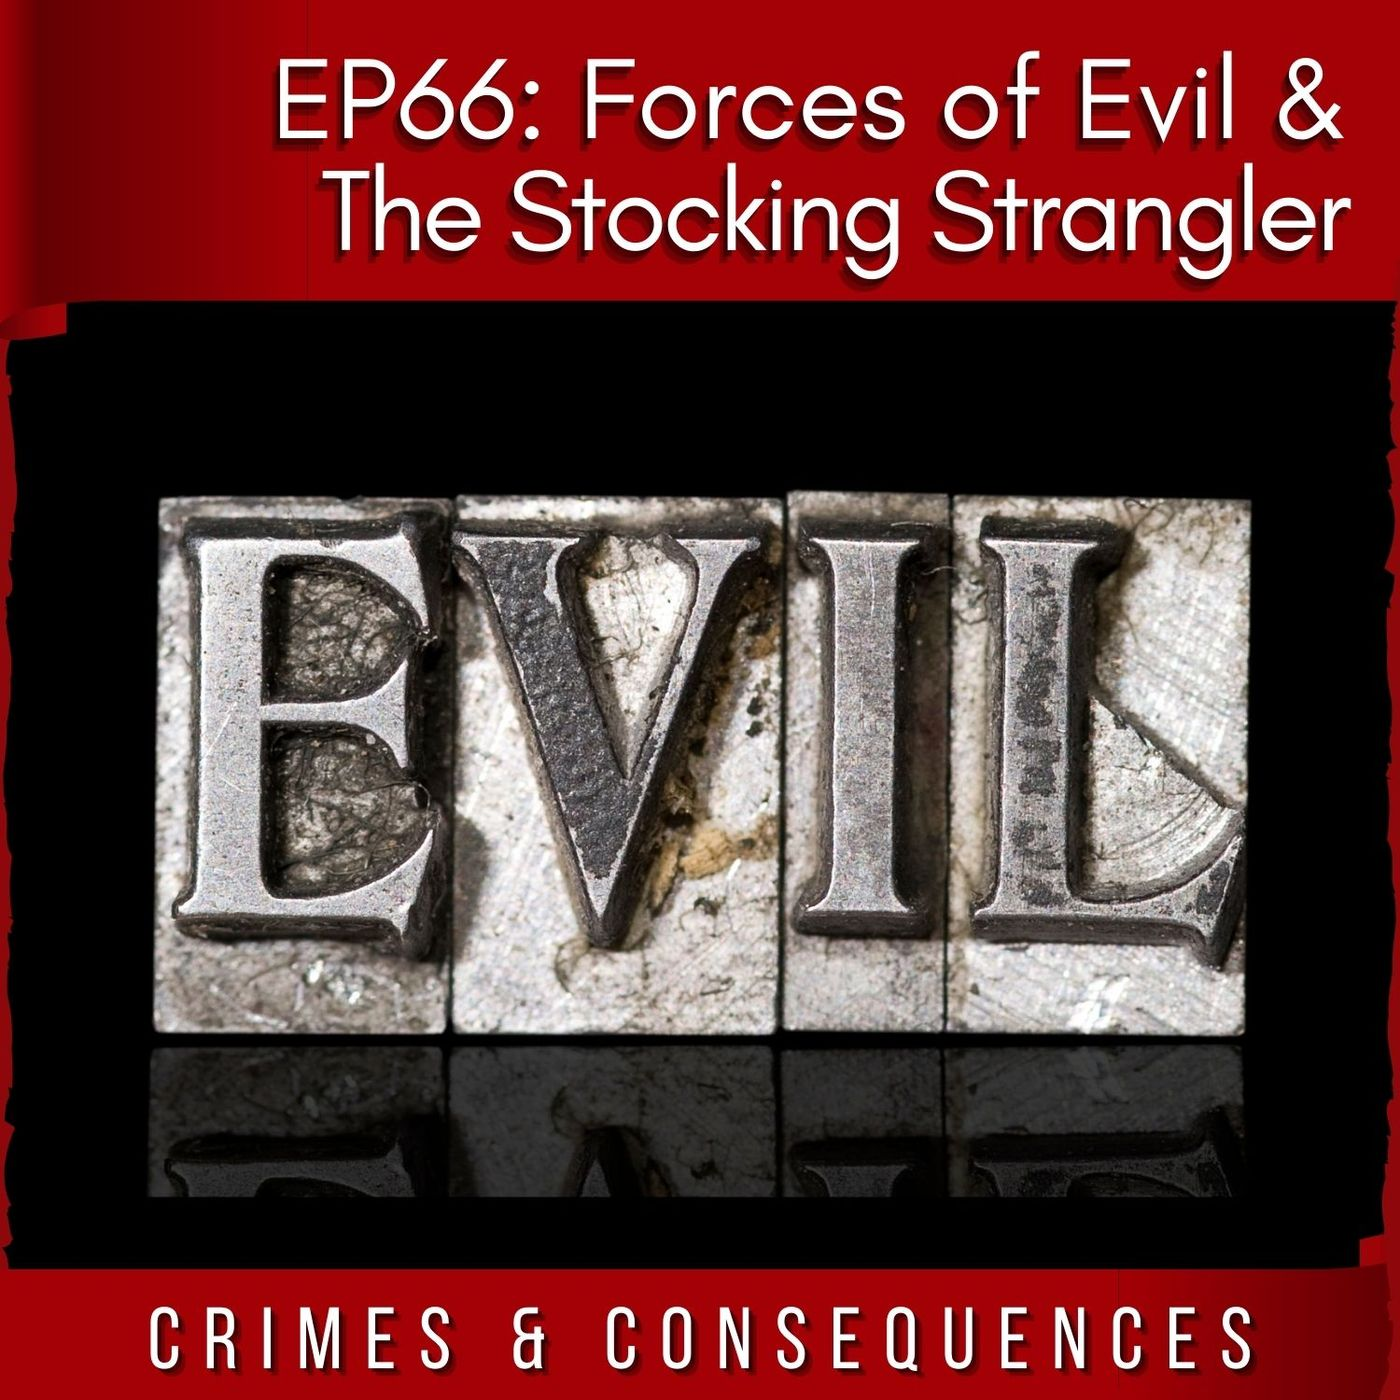 EP66: Forces of Evil/The Stocking Strangler